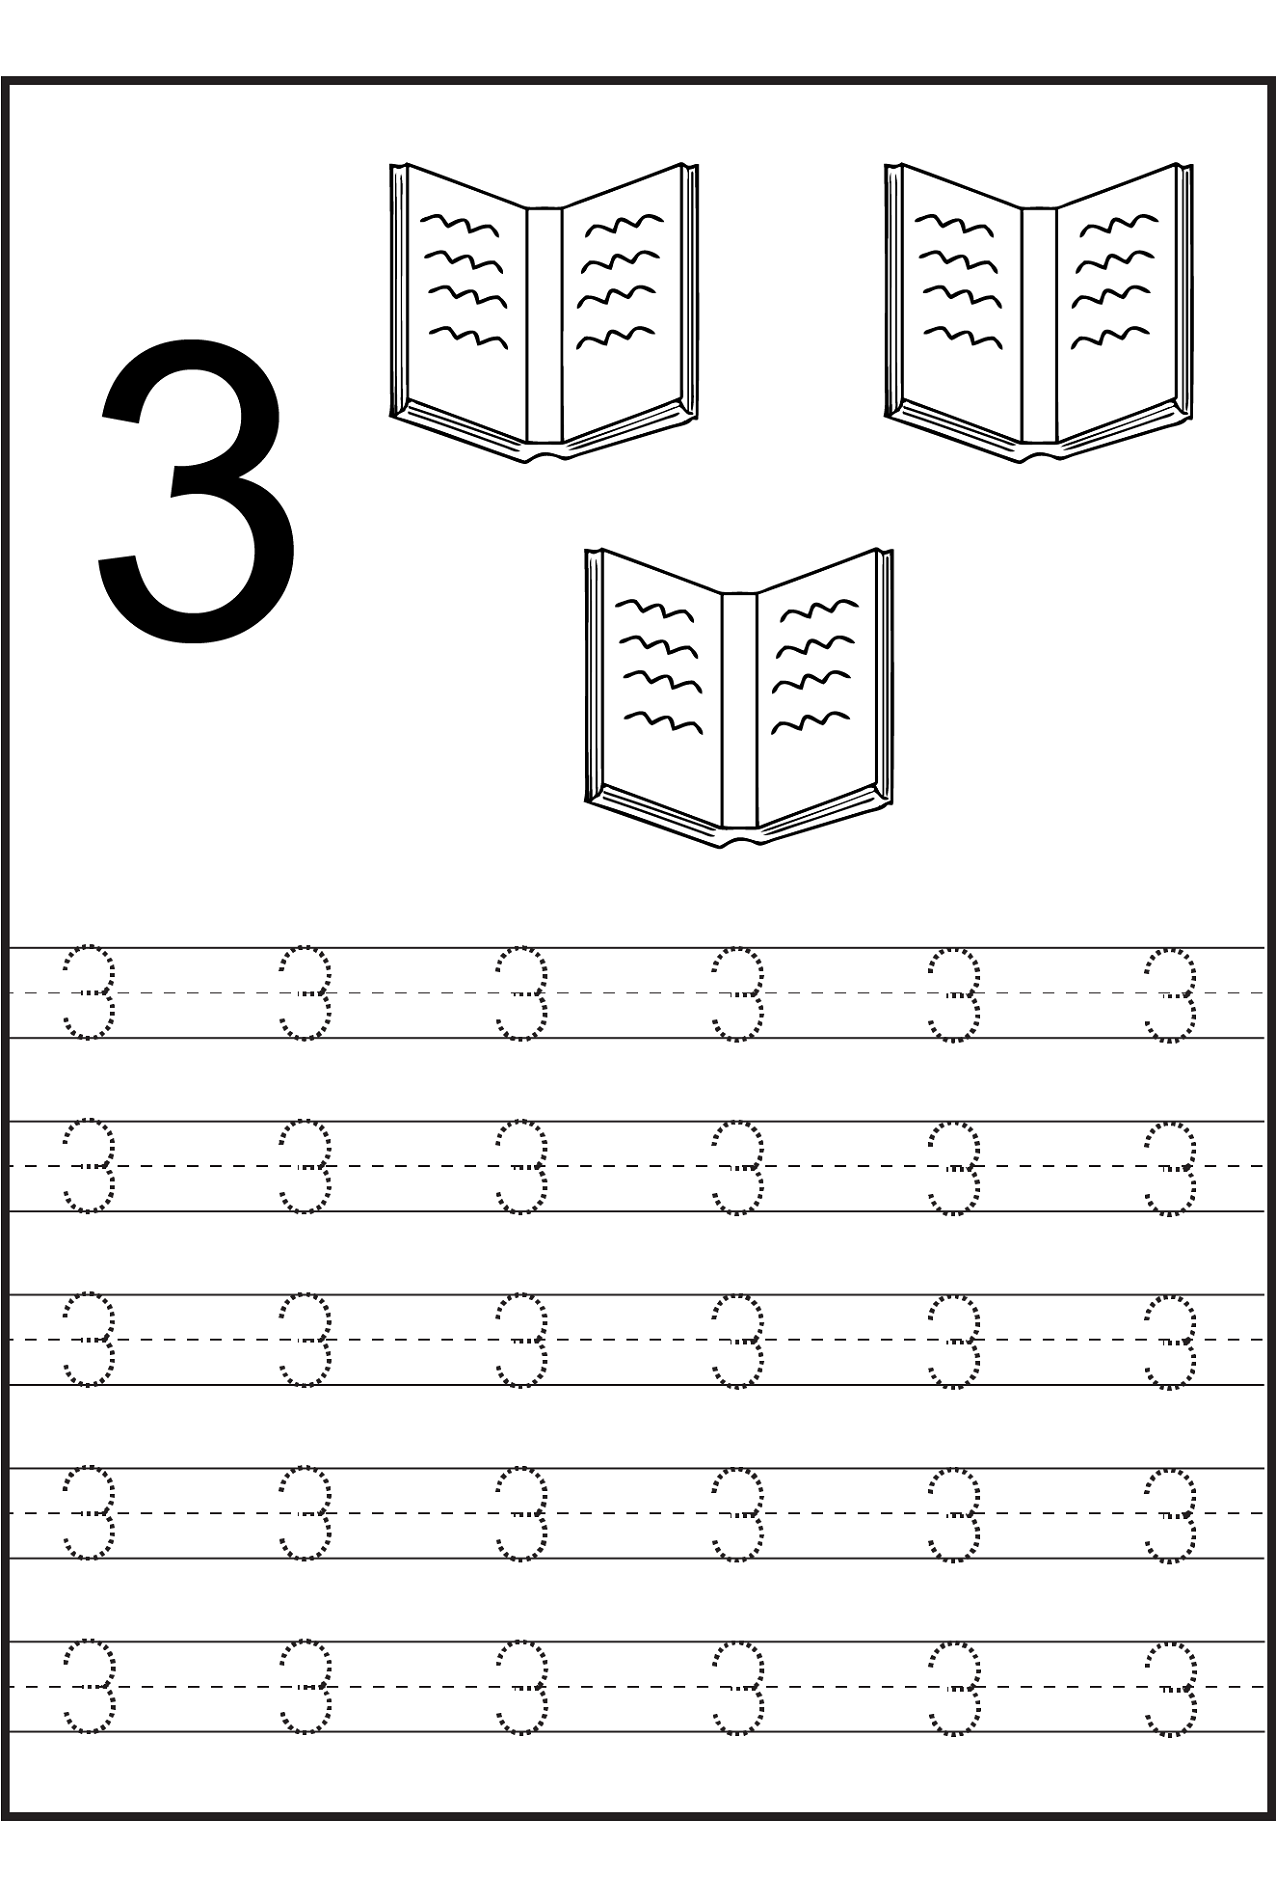 Printables Learning Worksheets For 3 Year Olds printables learning worksheets for 3 year olds safarmediapps 2 years activity shelter number